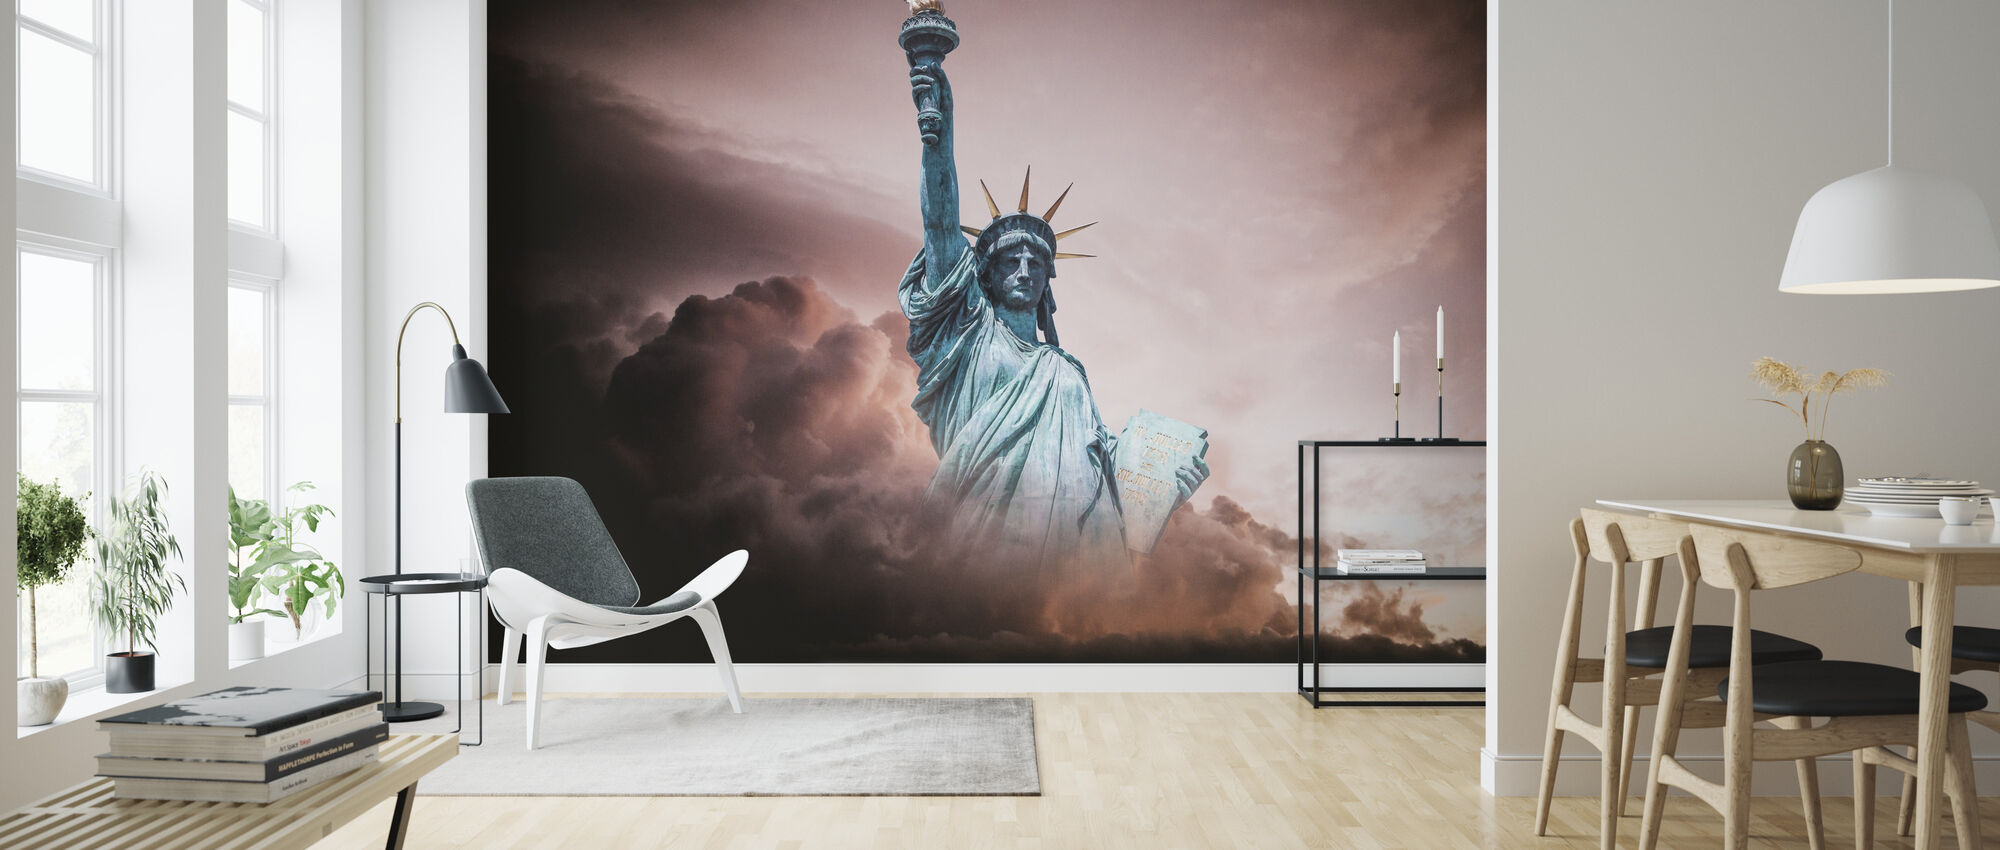 Statue of Liberty in Clouds - Wallpaper - Living Room